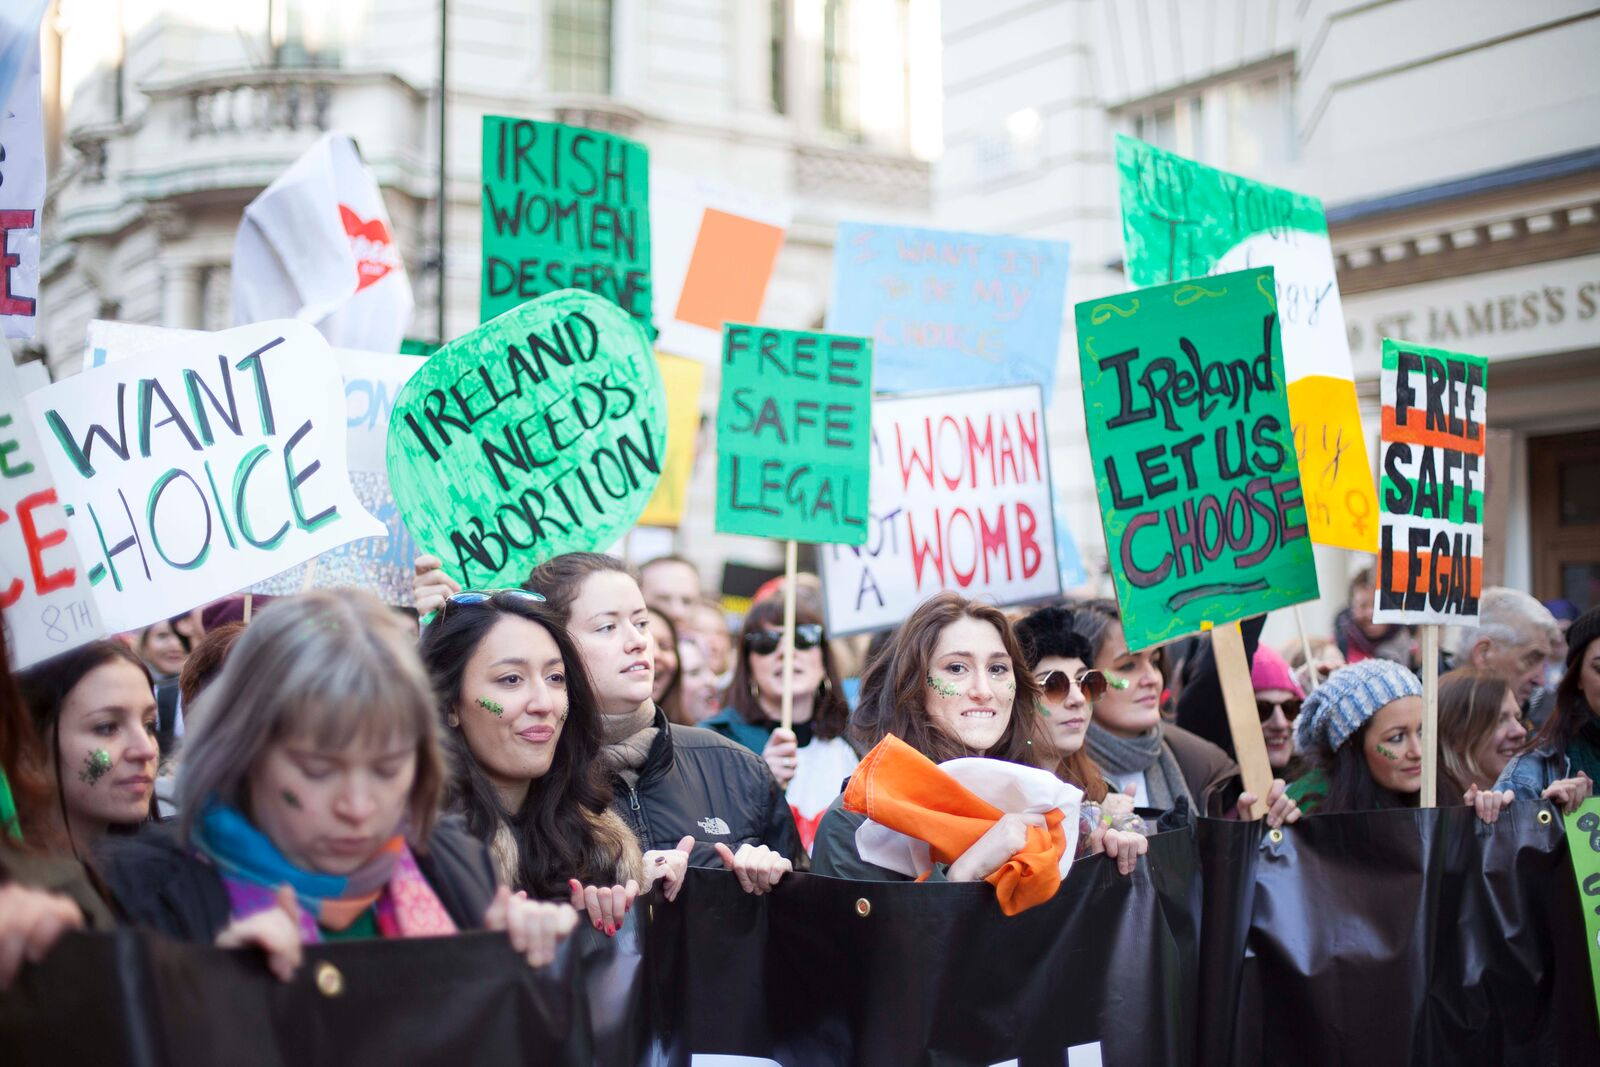 Northern Ireland abortion law 'untenable', 'disproportionate', and needs 'radical reconsideration', says Supreme Court